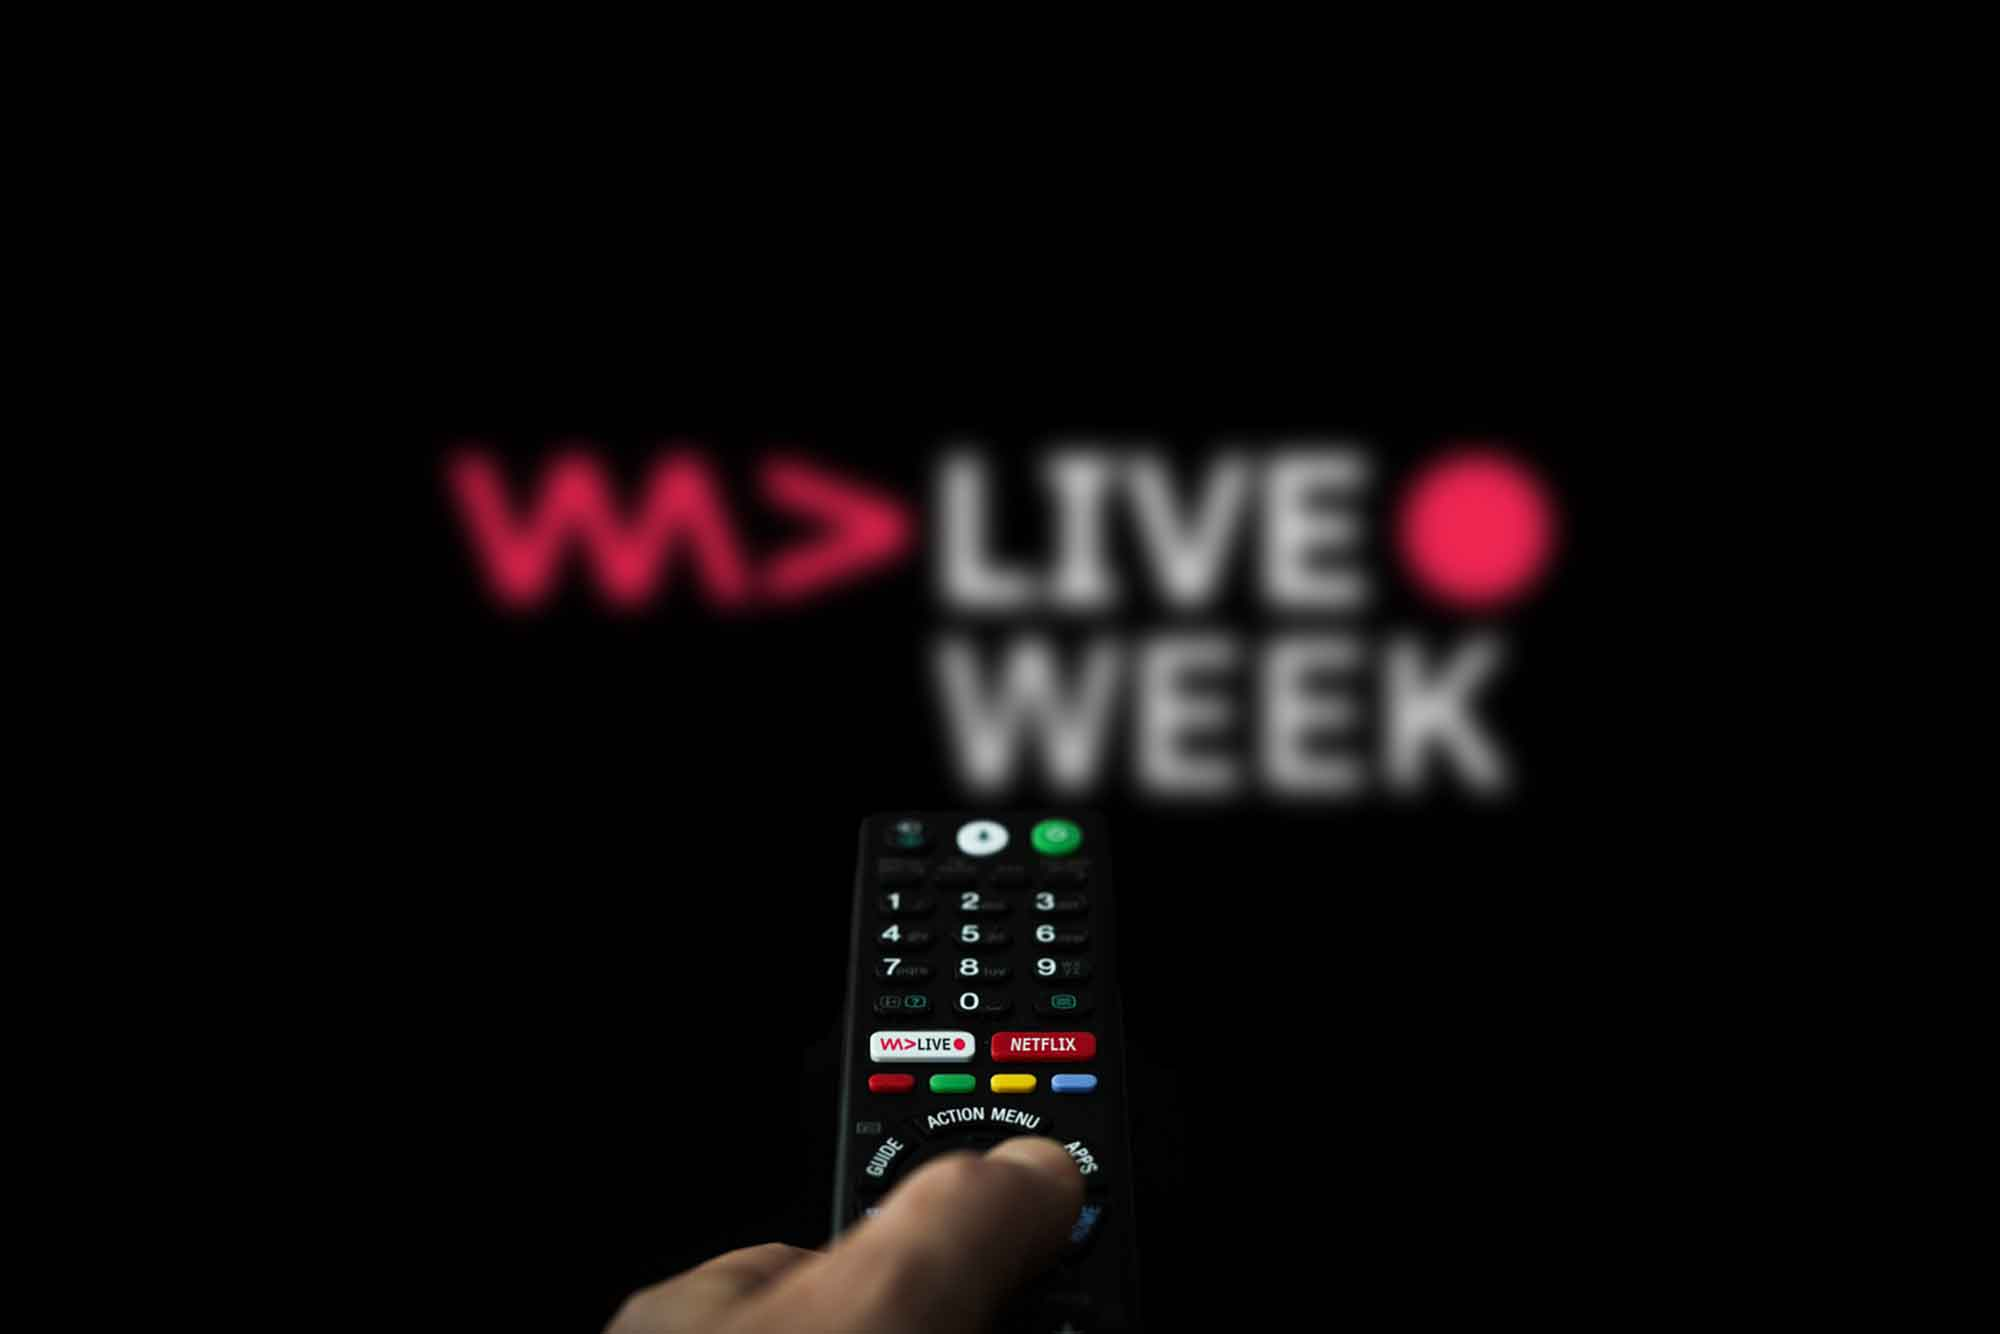 WeAreDevelopers Live Week – Second edition